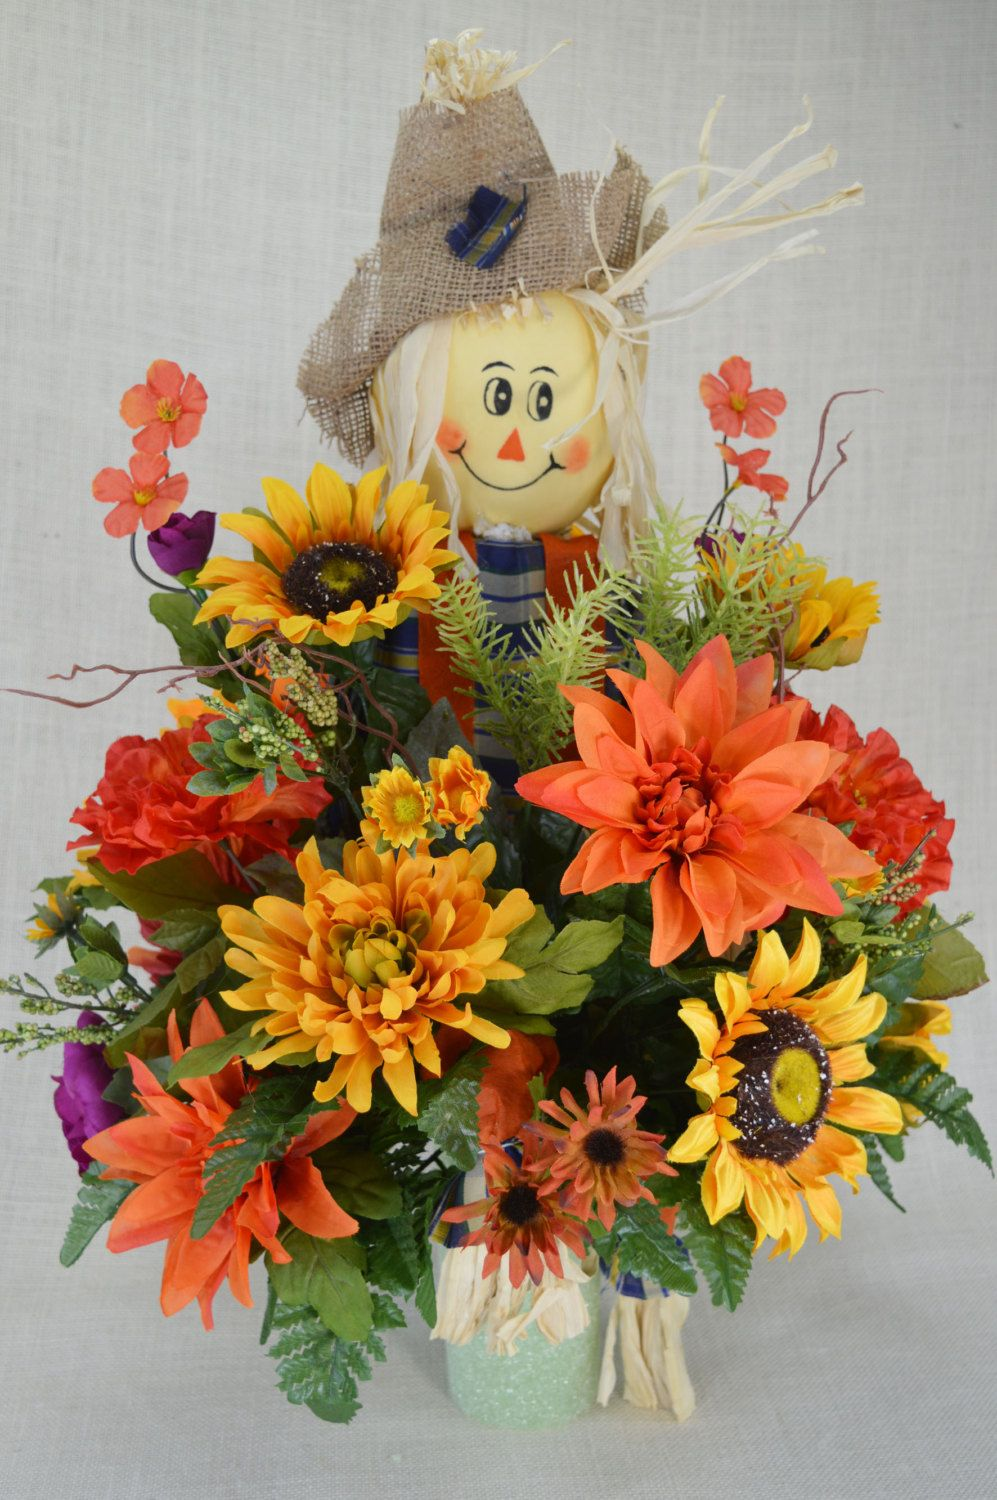 No Fc015 Sun Flower Fall Cemetery Arrangement Autumn Cone Flower Cone Arrangement Grave Tombstone Arrangement Cemetery Flowers Cemetery Flowers Solar Flower Flower Arrangements Diy